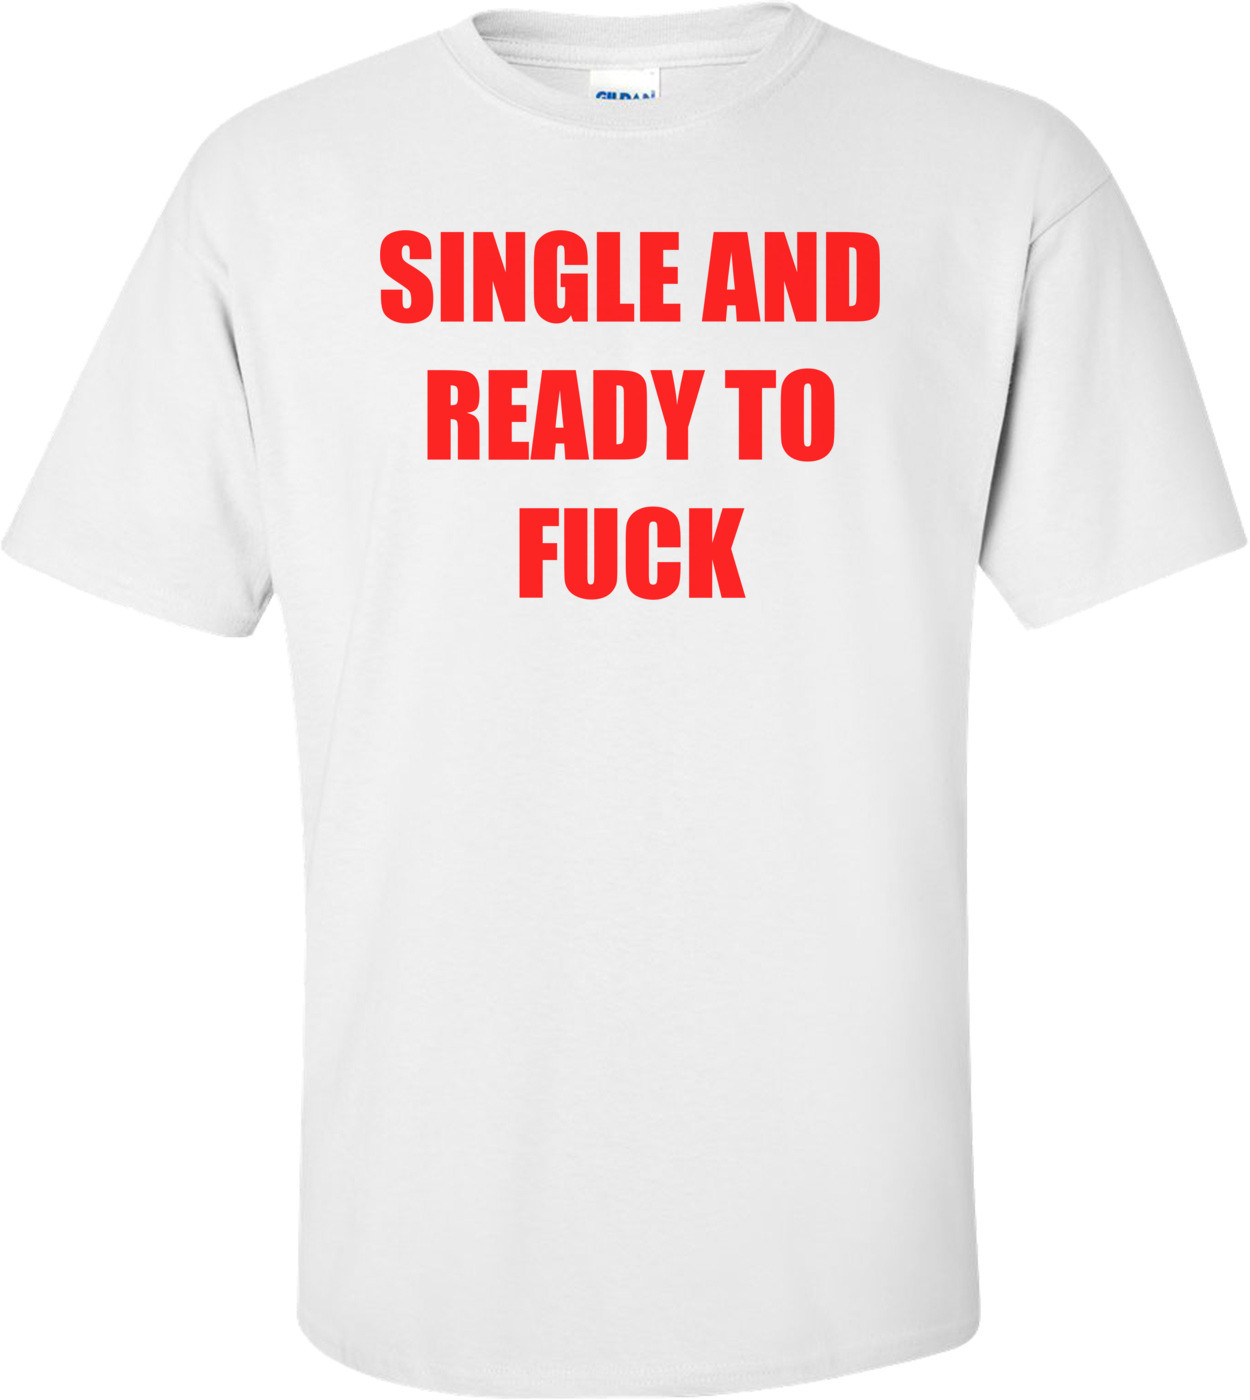 SINGLE AND READY TO FUCK Shirt